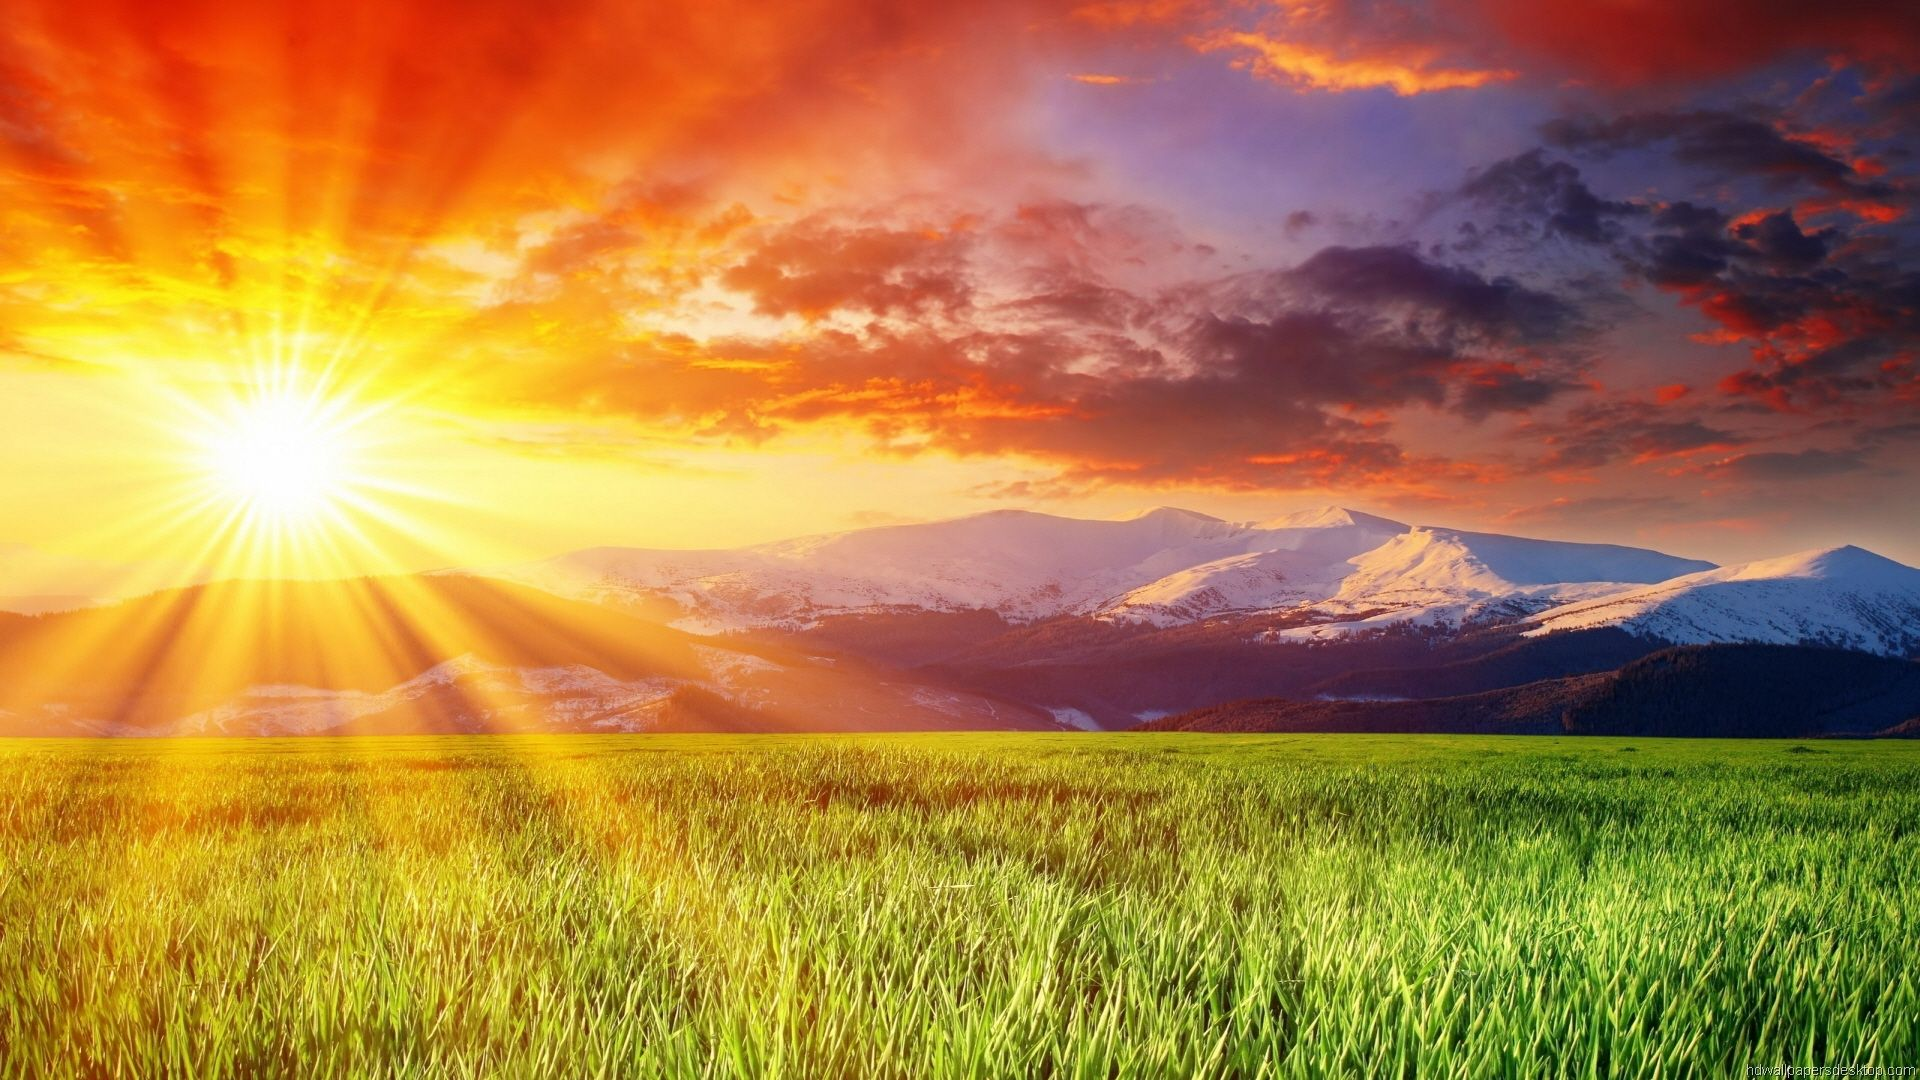 Nature Hd Wallpapers Shining Sun Skies Collection 1 In 2019